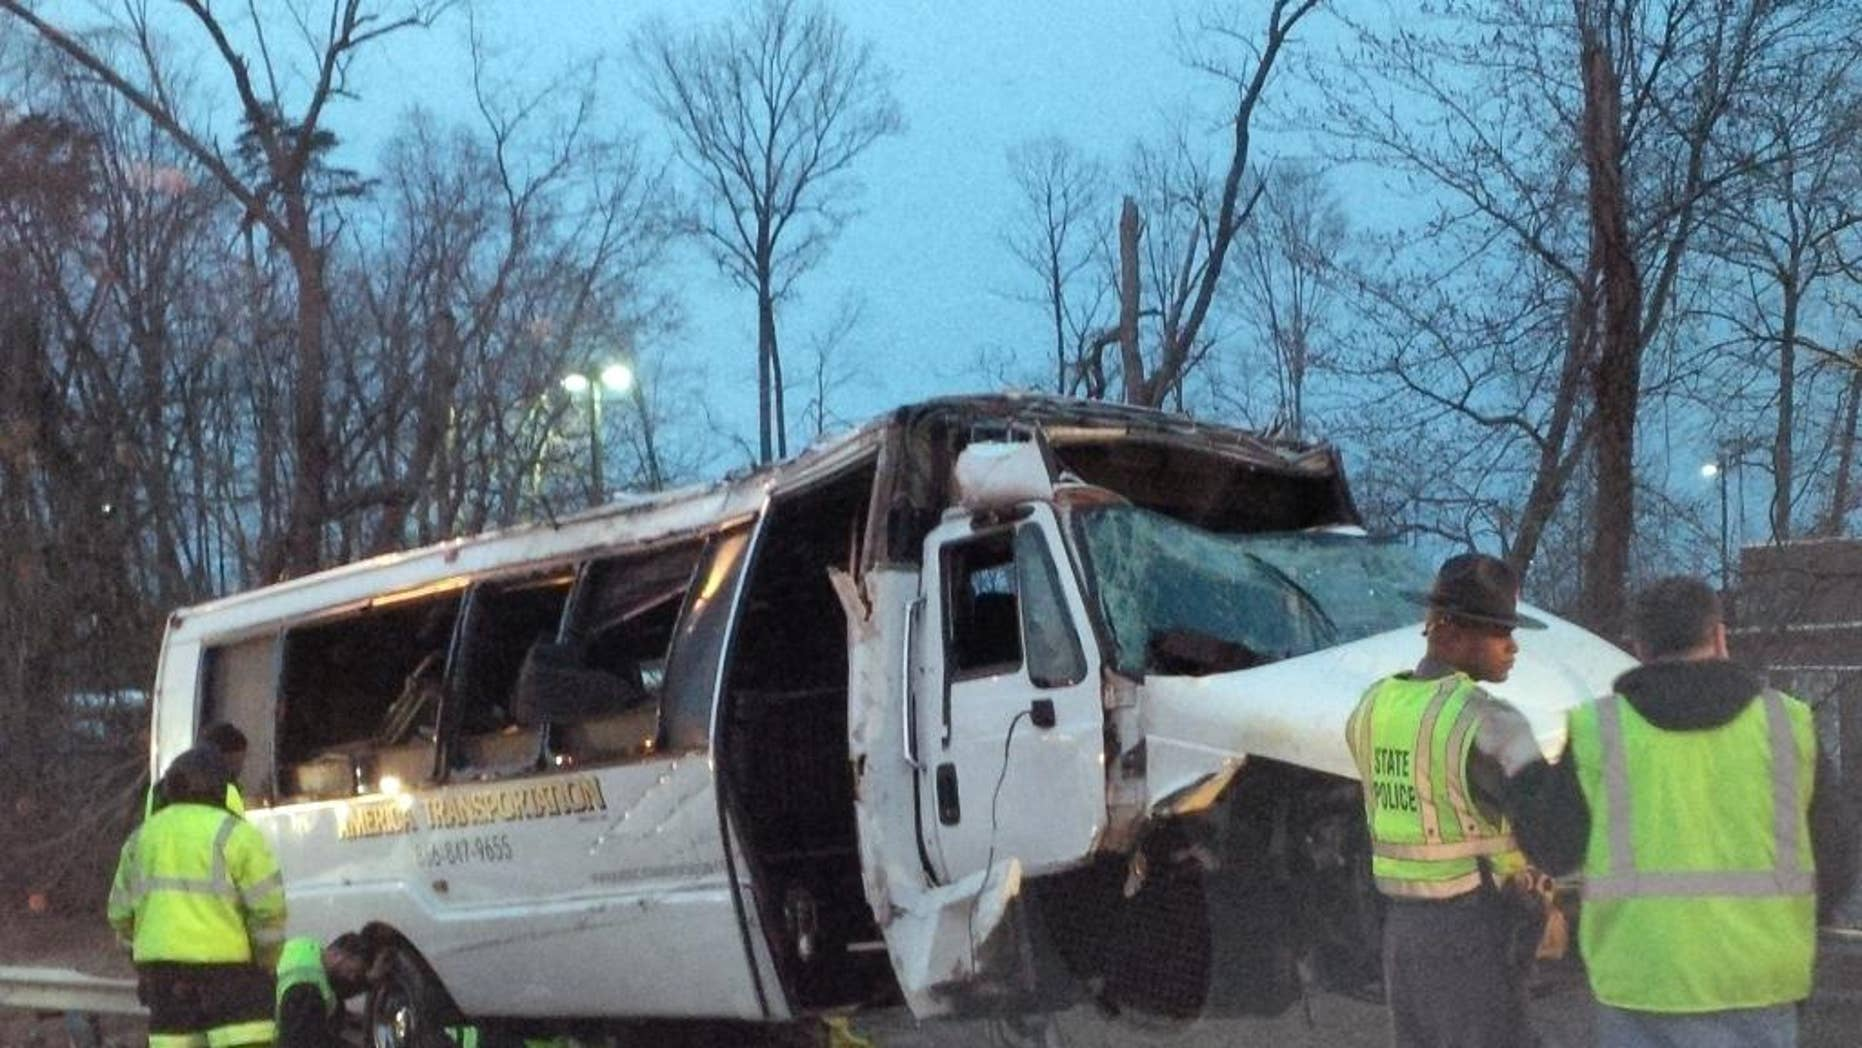 This photo provided by the Virginia State Police,  police investigate the scene of a bus accident on Interstate 95, early Sunday, March 23, 2014 in Fairfax County, Va.  The shuttle bus struck a guardrail and overturned before dawn Sunday just south of the nation's capital, leaving at least one person dead and sending 16 others to the hospital, Virginia State Police said.  The bus was headed south on the heavily traveled East Coast artery when witnesses reported a white, speeding four-door passenger vehicle swerved into the bus's travel lane. The bus then swerved to the right to avoid the sedan, ran off the road, struck the guardrail and overturned, Virginia State Police said. The crash occurred on the interstate in northern Virginia's Fairfax County and police were called at 3:28 a.m. Sunday, State Police spokeswoman Corinne Geller said. (AP Photo/Virginia State Police)